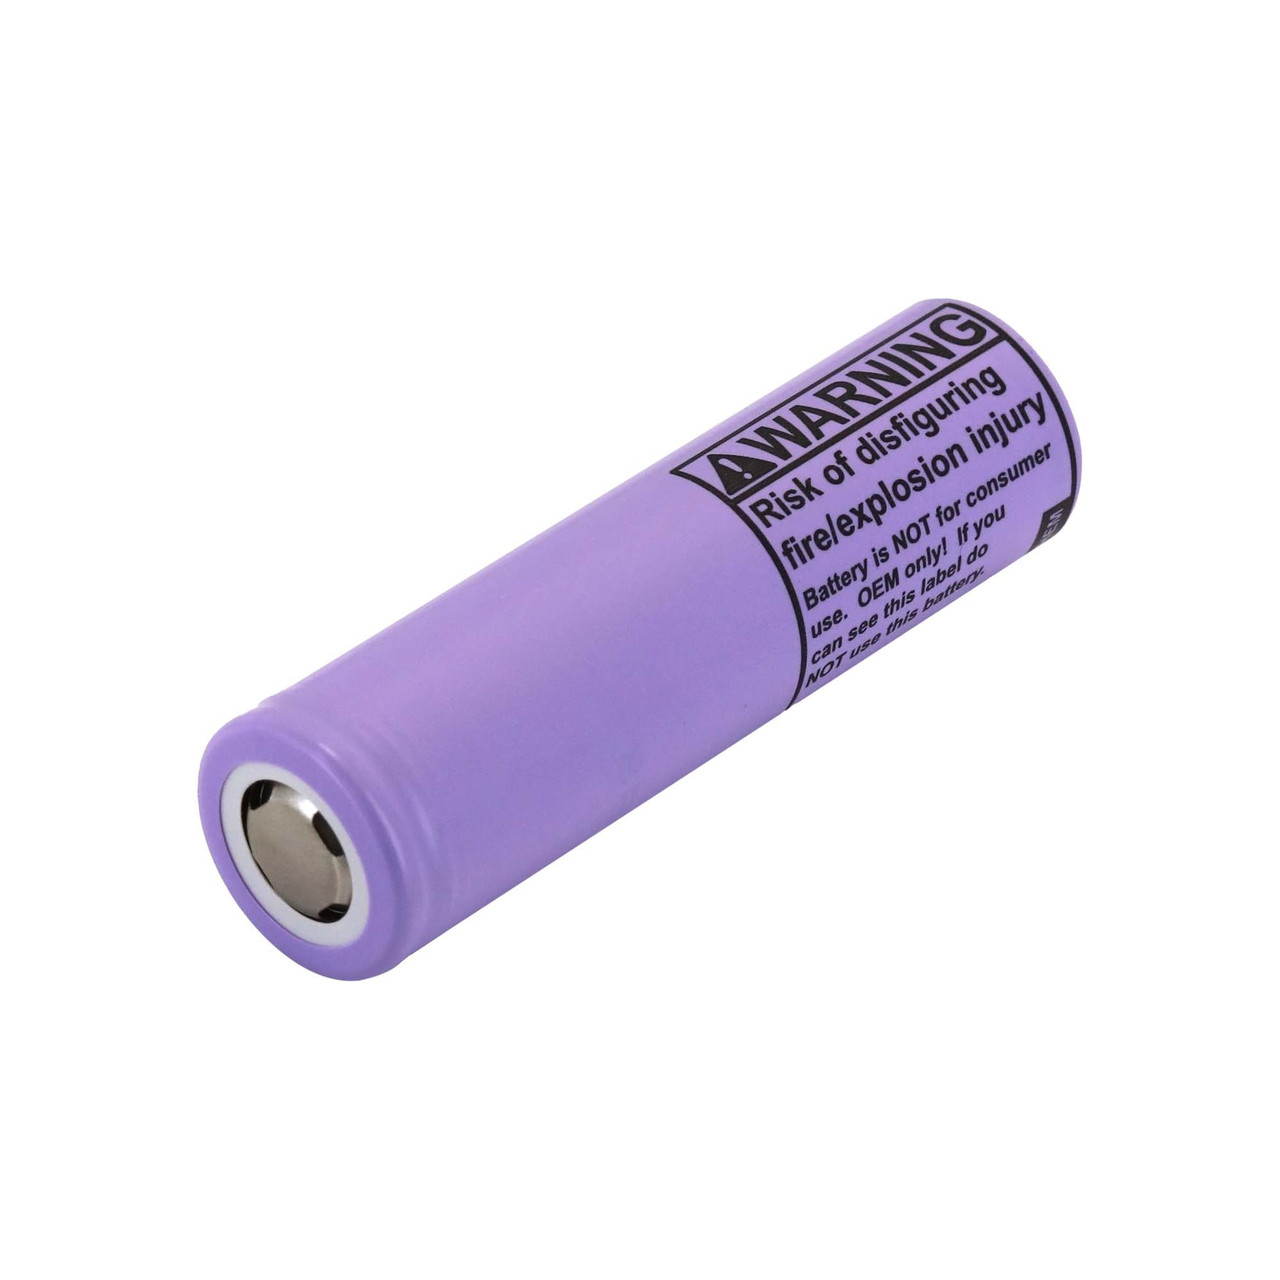 LG INR18650 F1L 3.63V 3350mAh Rechargeable Flat Top Battery, 4.875A Max continuous discharge, W/O PCB